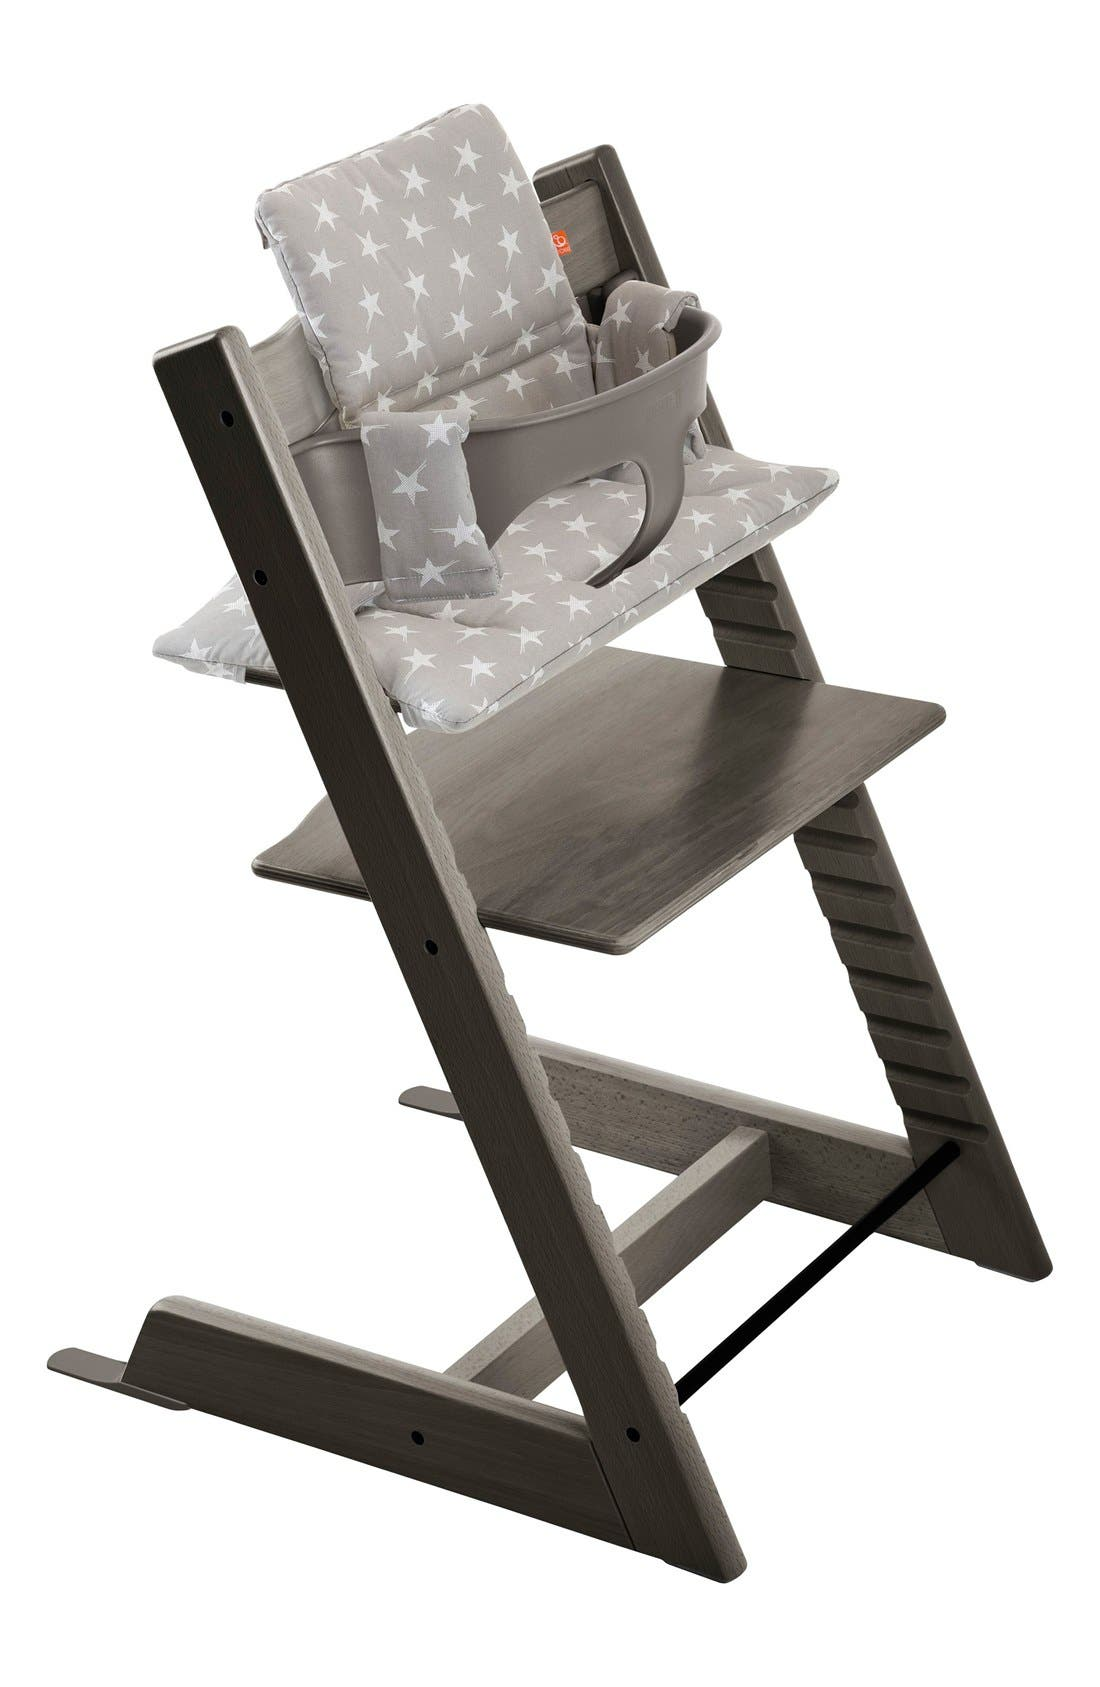 Alternate Image 1 Selected - Stokke 'Tripp Trapp®' Chair, Baby Set, Cushion & Tray Set (Nordstrom Exclusive)